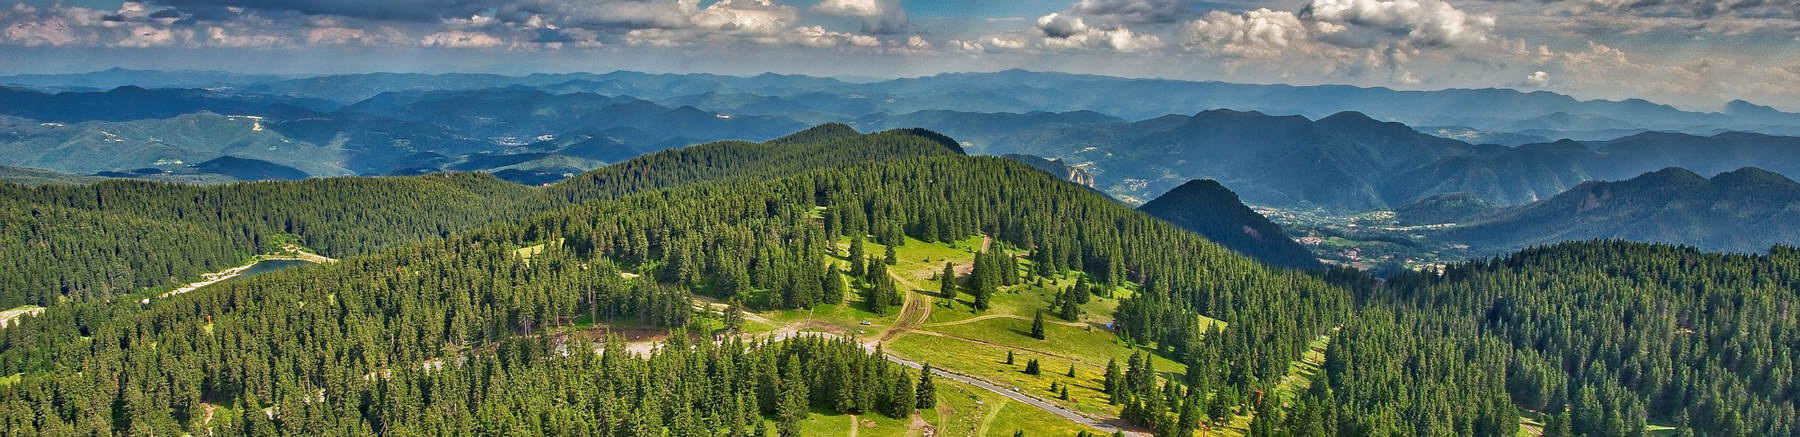 Beautiful aerial view of the forest in the Bulgarian mountains